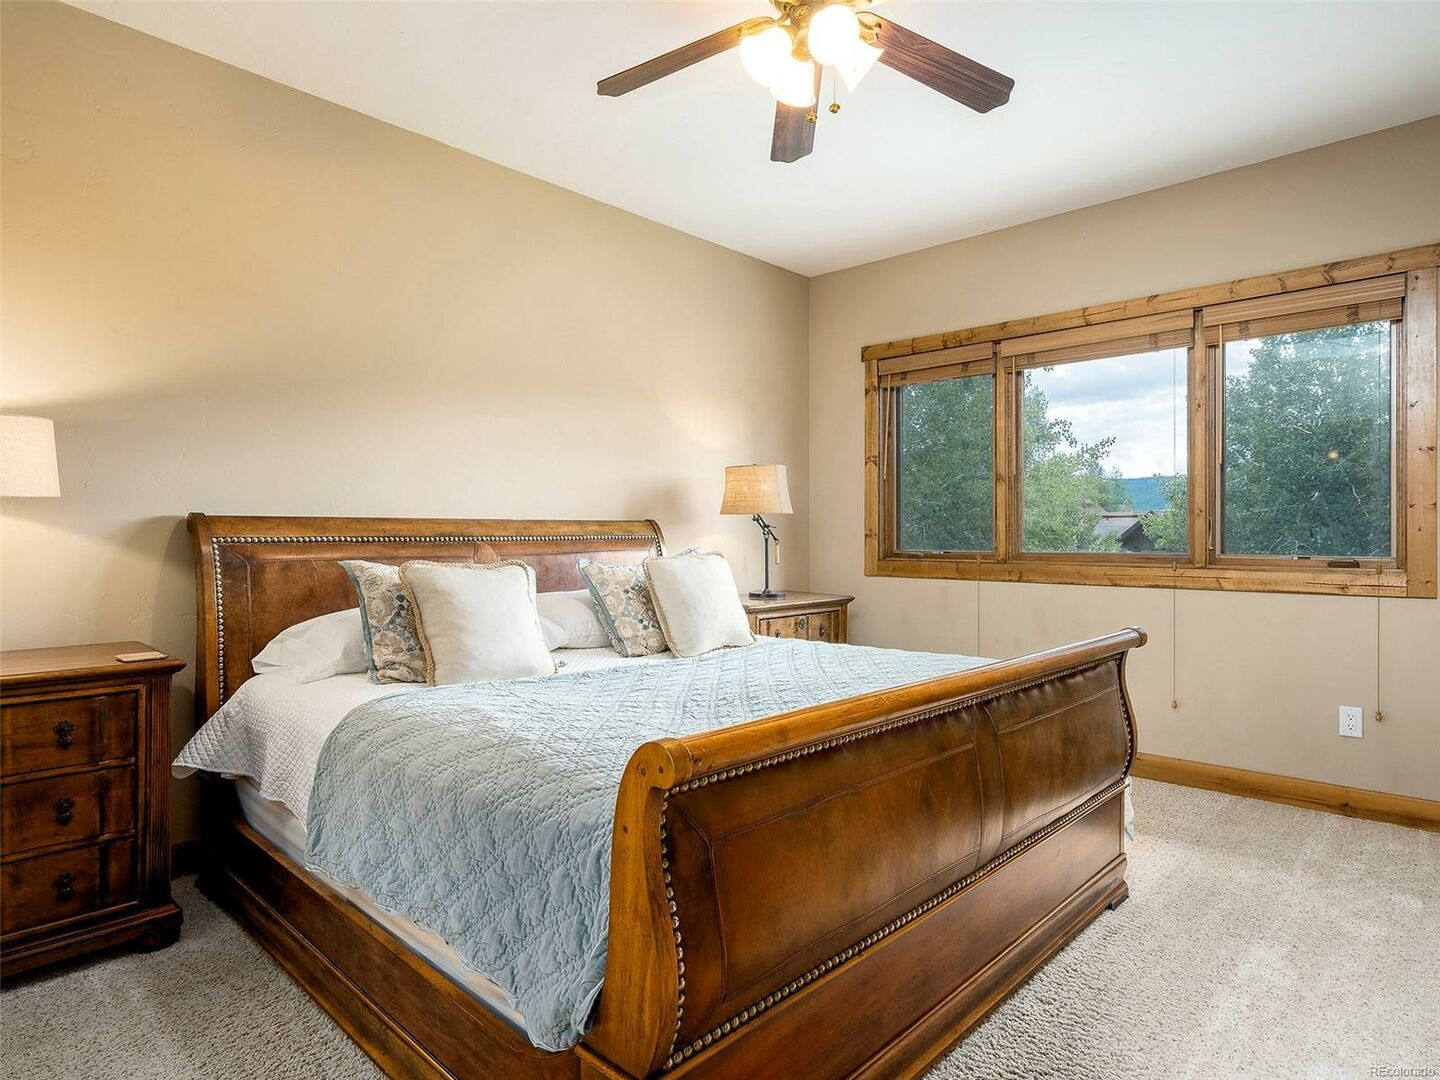 Large Bed, Nightstands, Lamps, and Window.